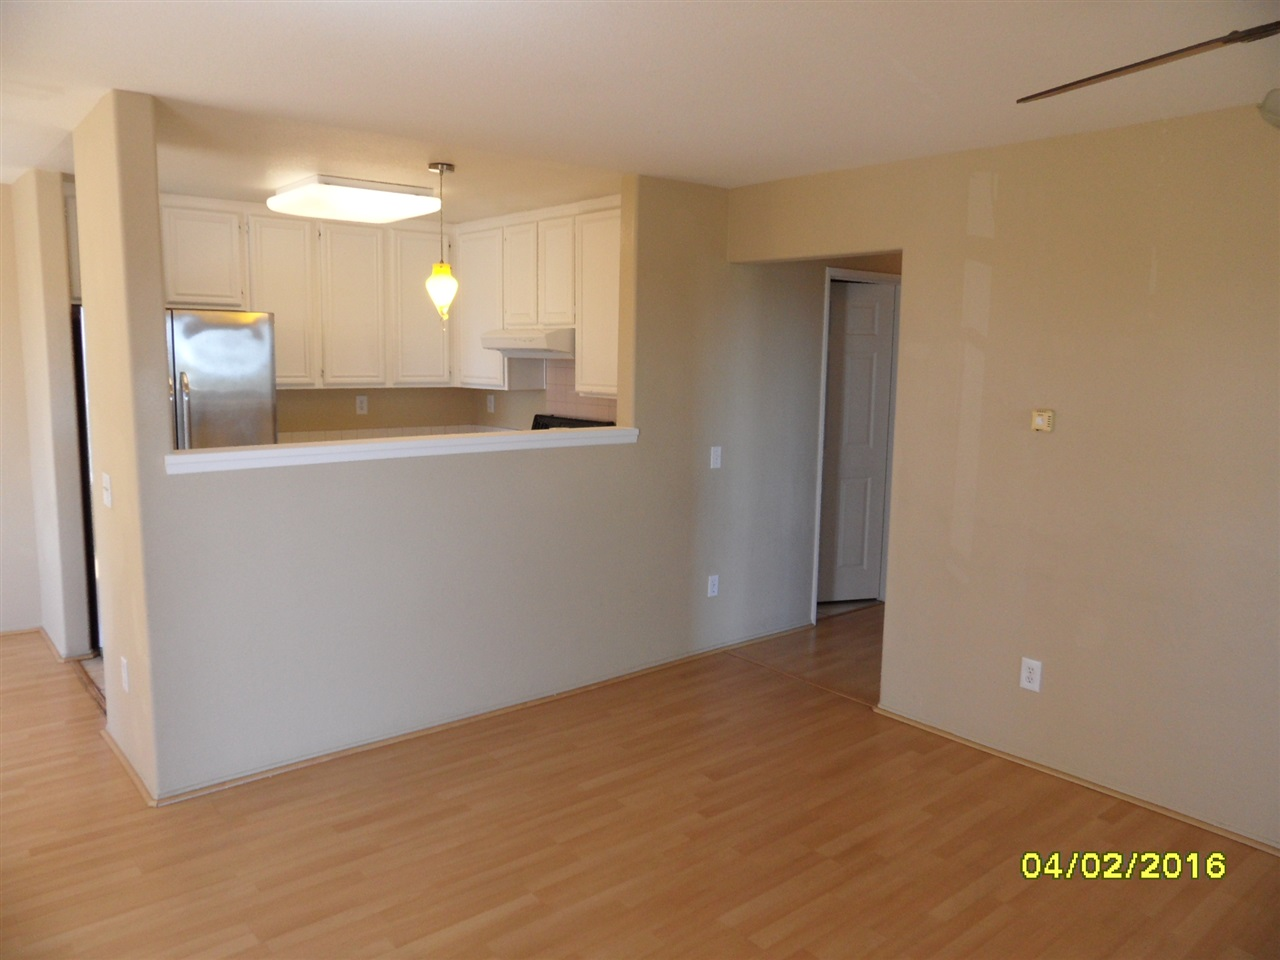 Photo 9: LINDA VISTA Condo for sale : 3 bedrooms : 2012 Coolidge St #93 in San Diego